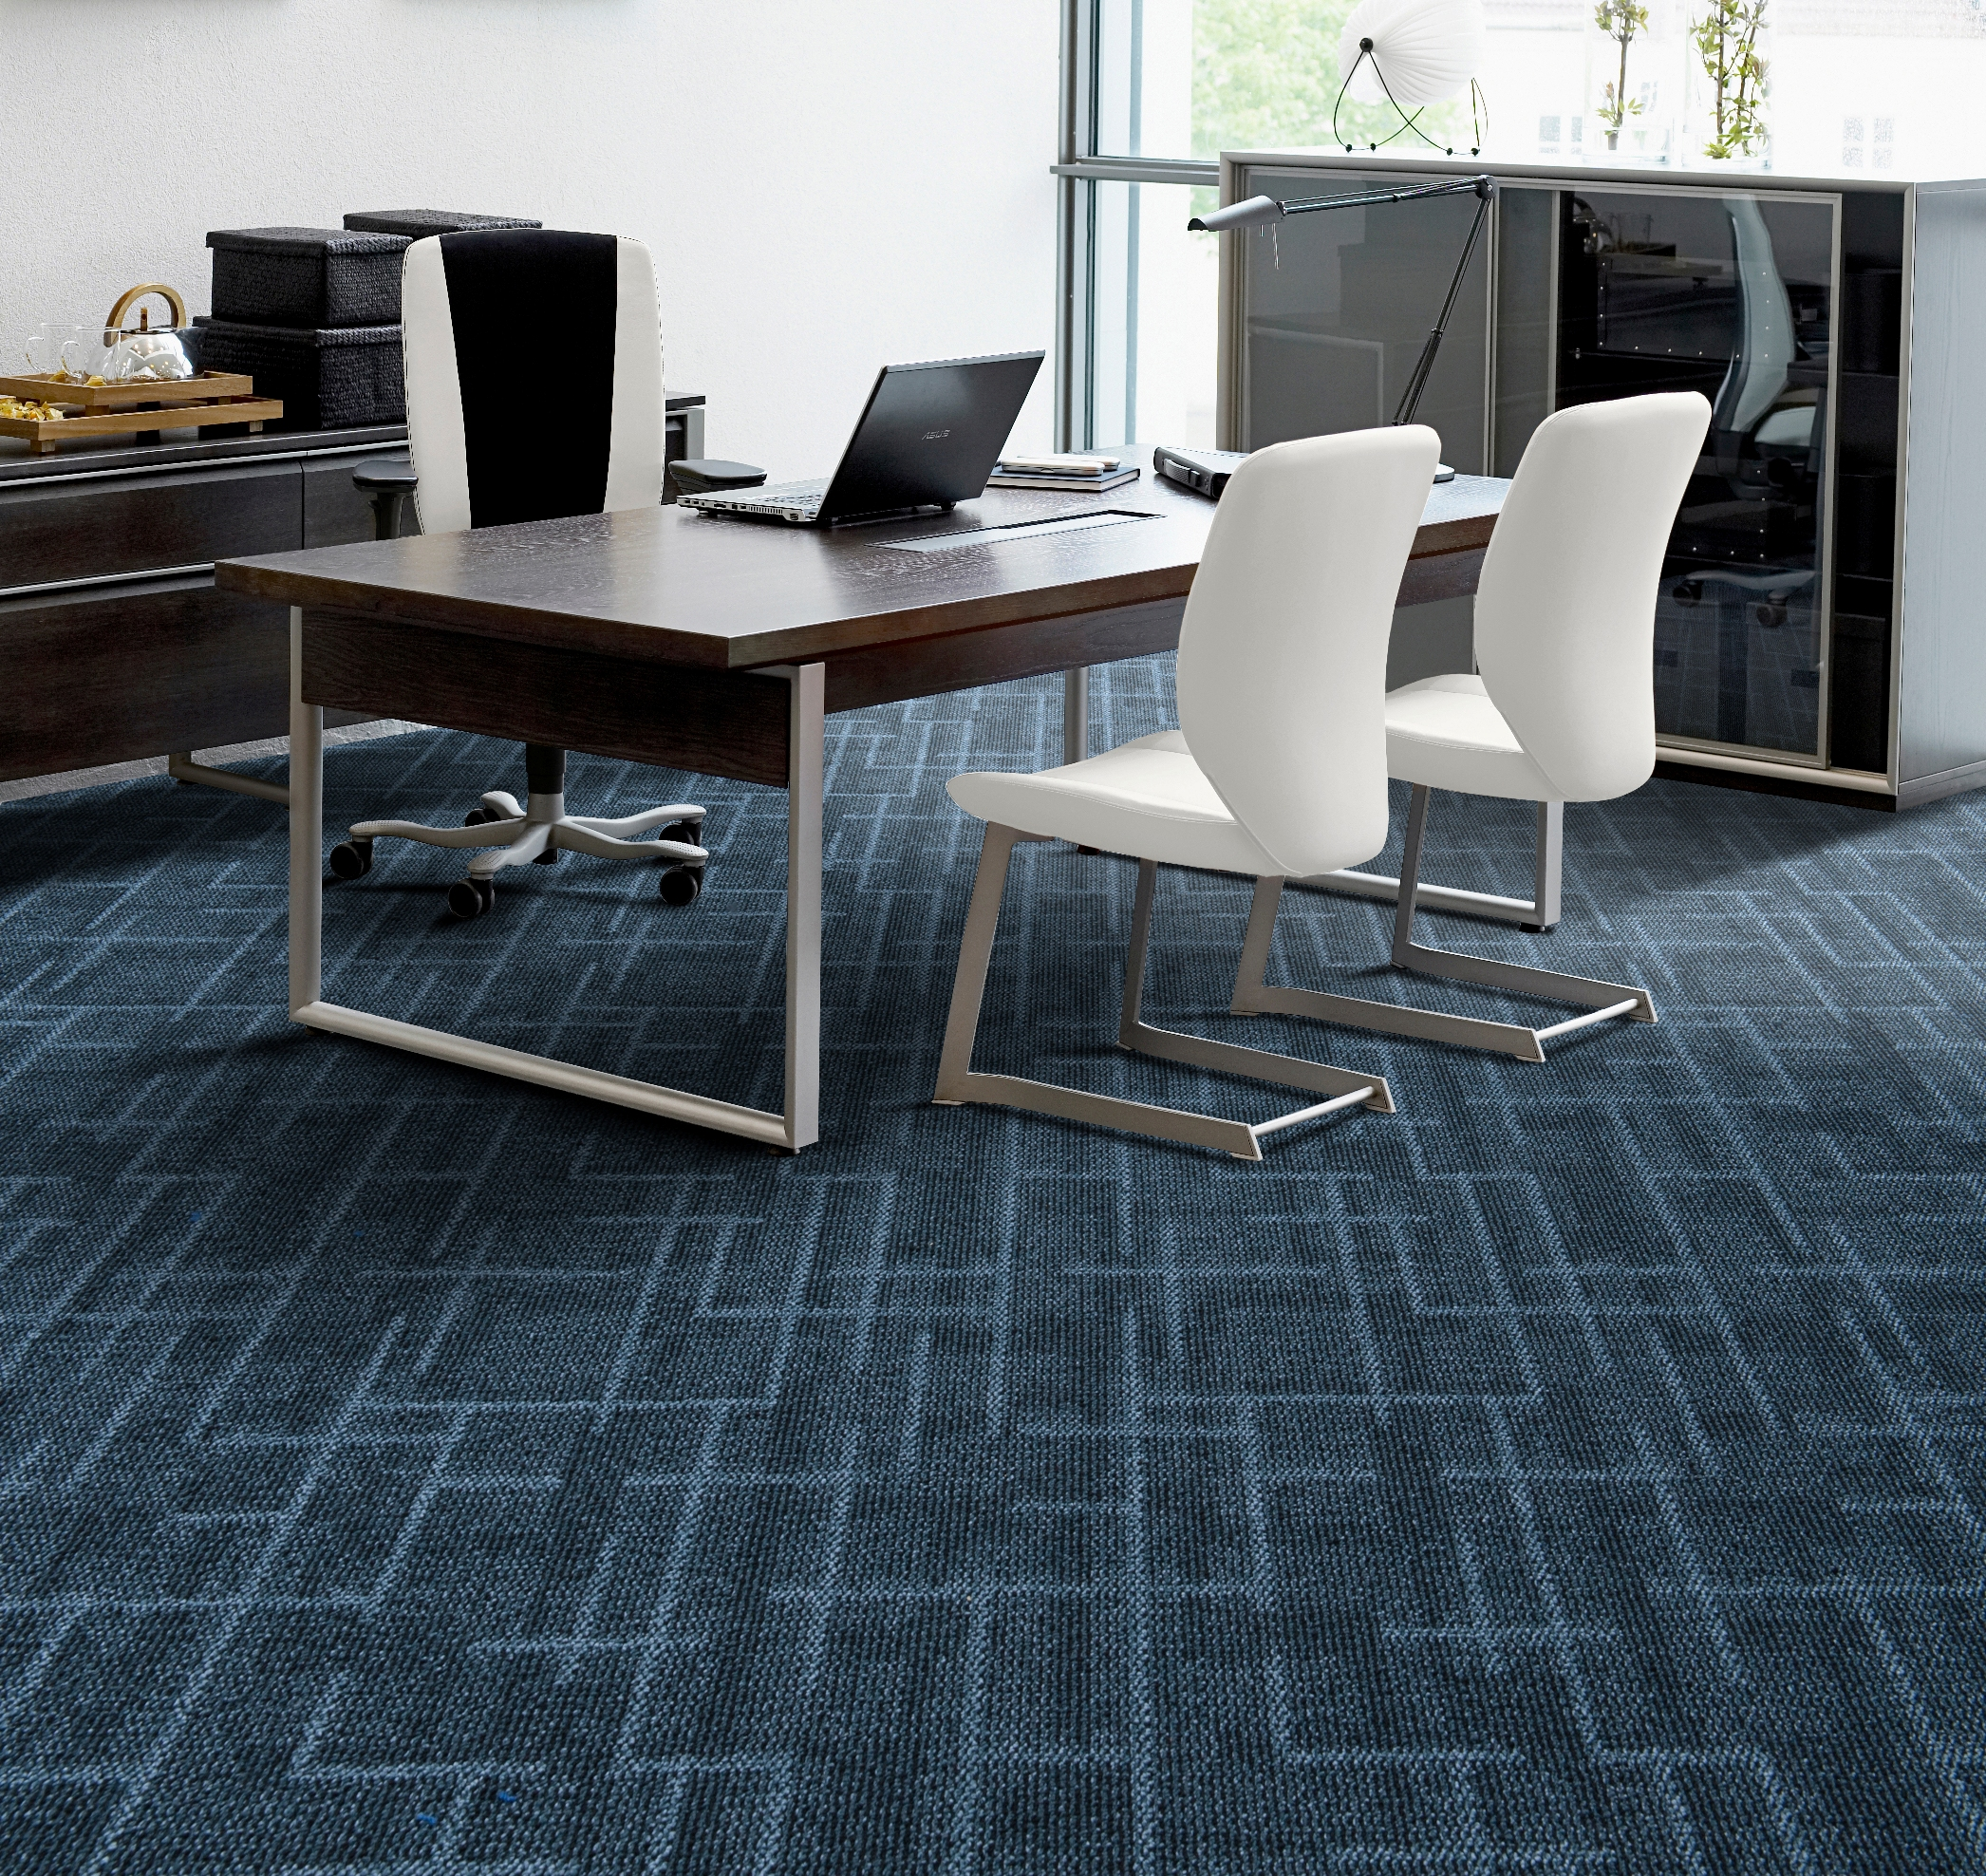 Things to consider while selecting an office carpet